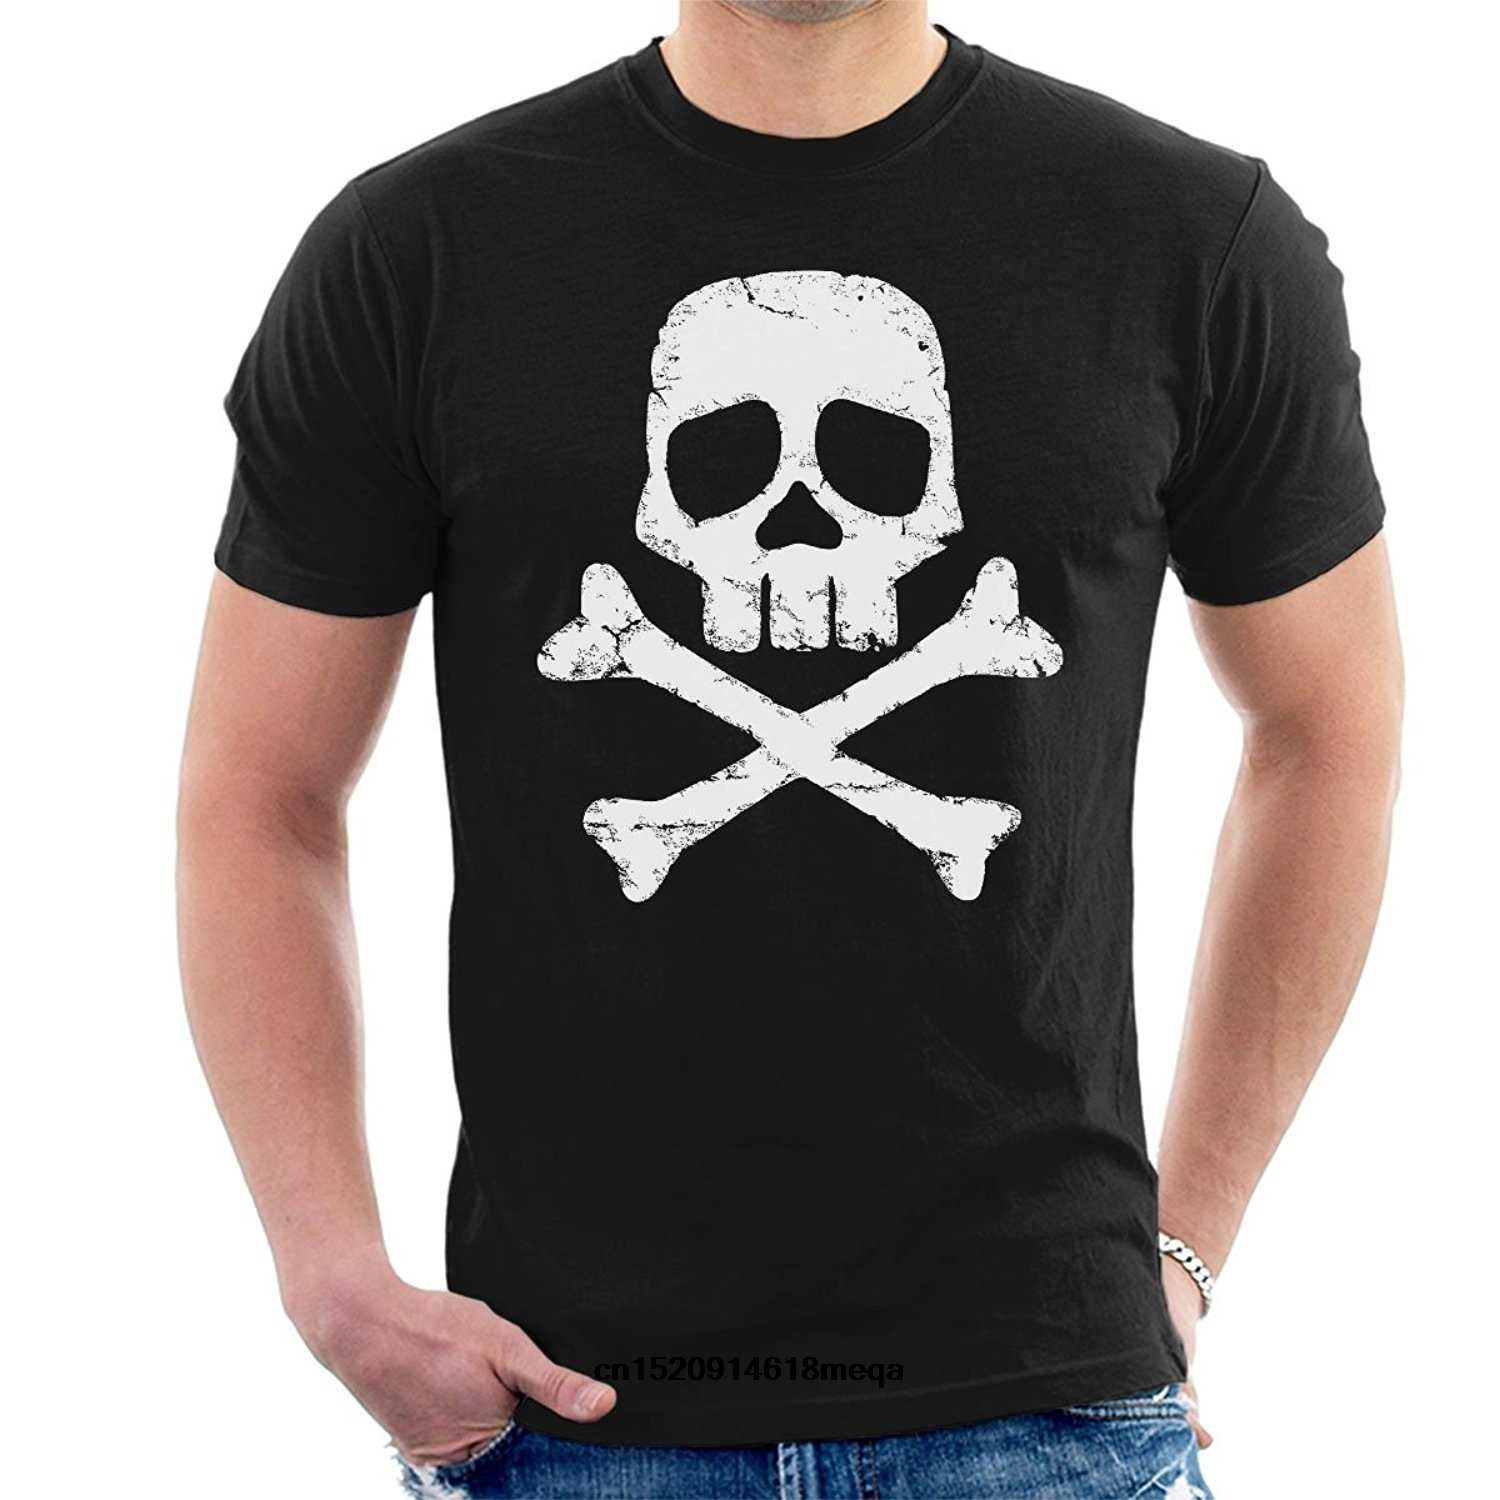 T-shirt Space Pirate Captain Harlock Schedel En Cross Bones mannen Korte Mouw T-Shirt